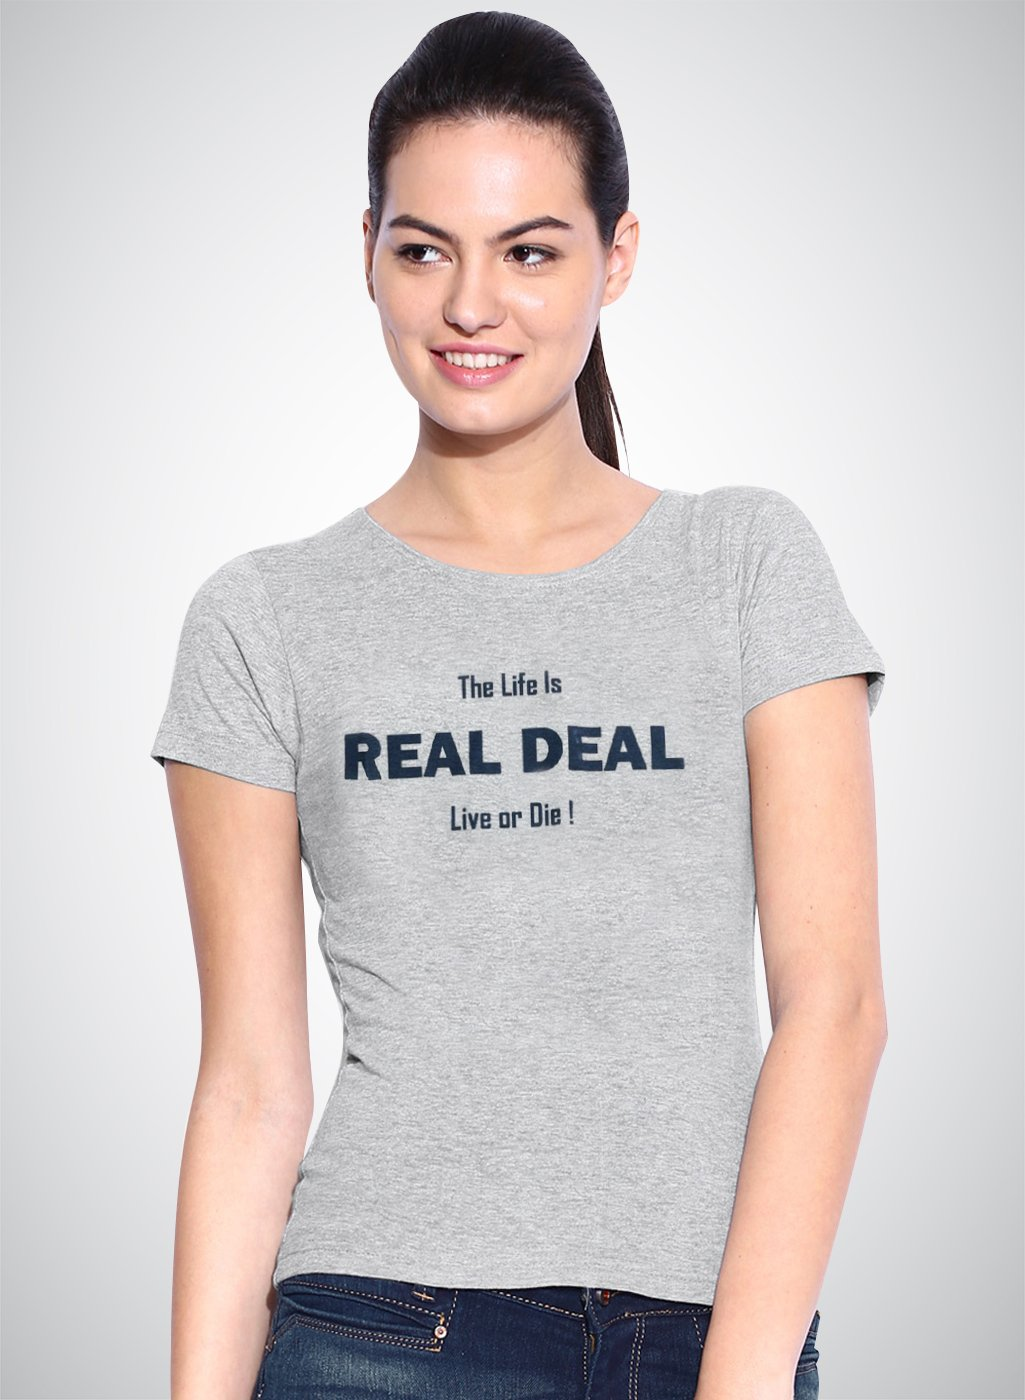 The Life Is REAL DEAL Live or Die !字體設計T恤